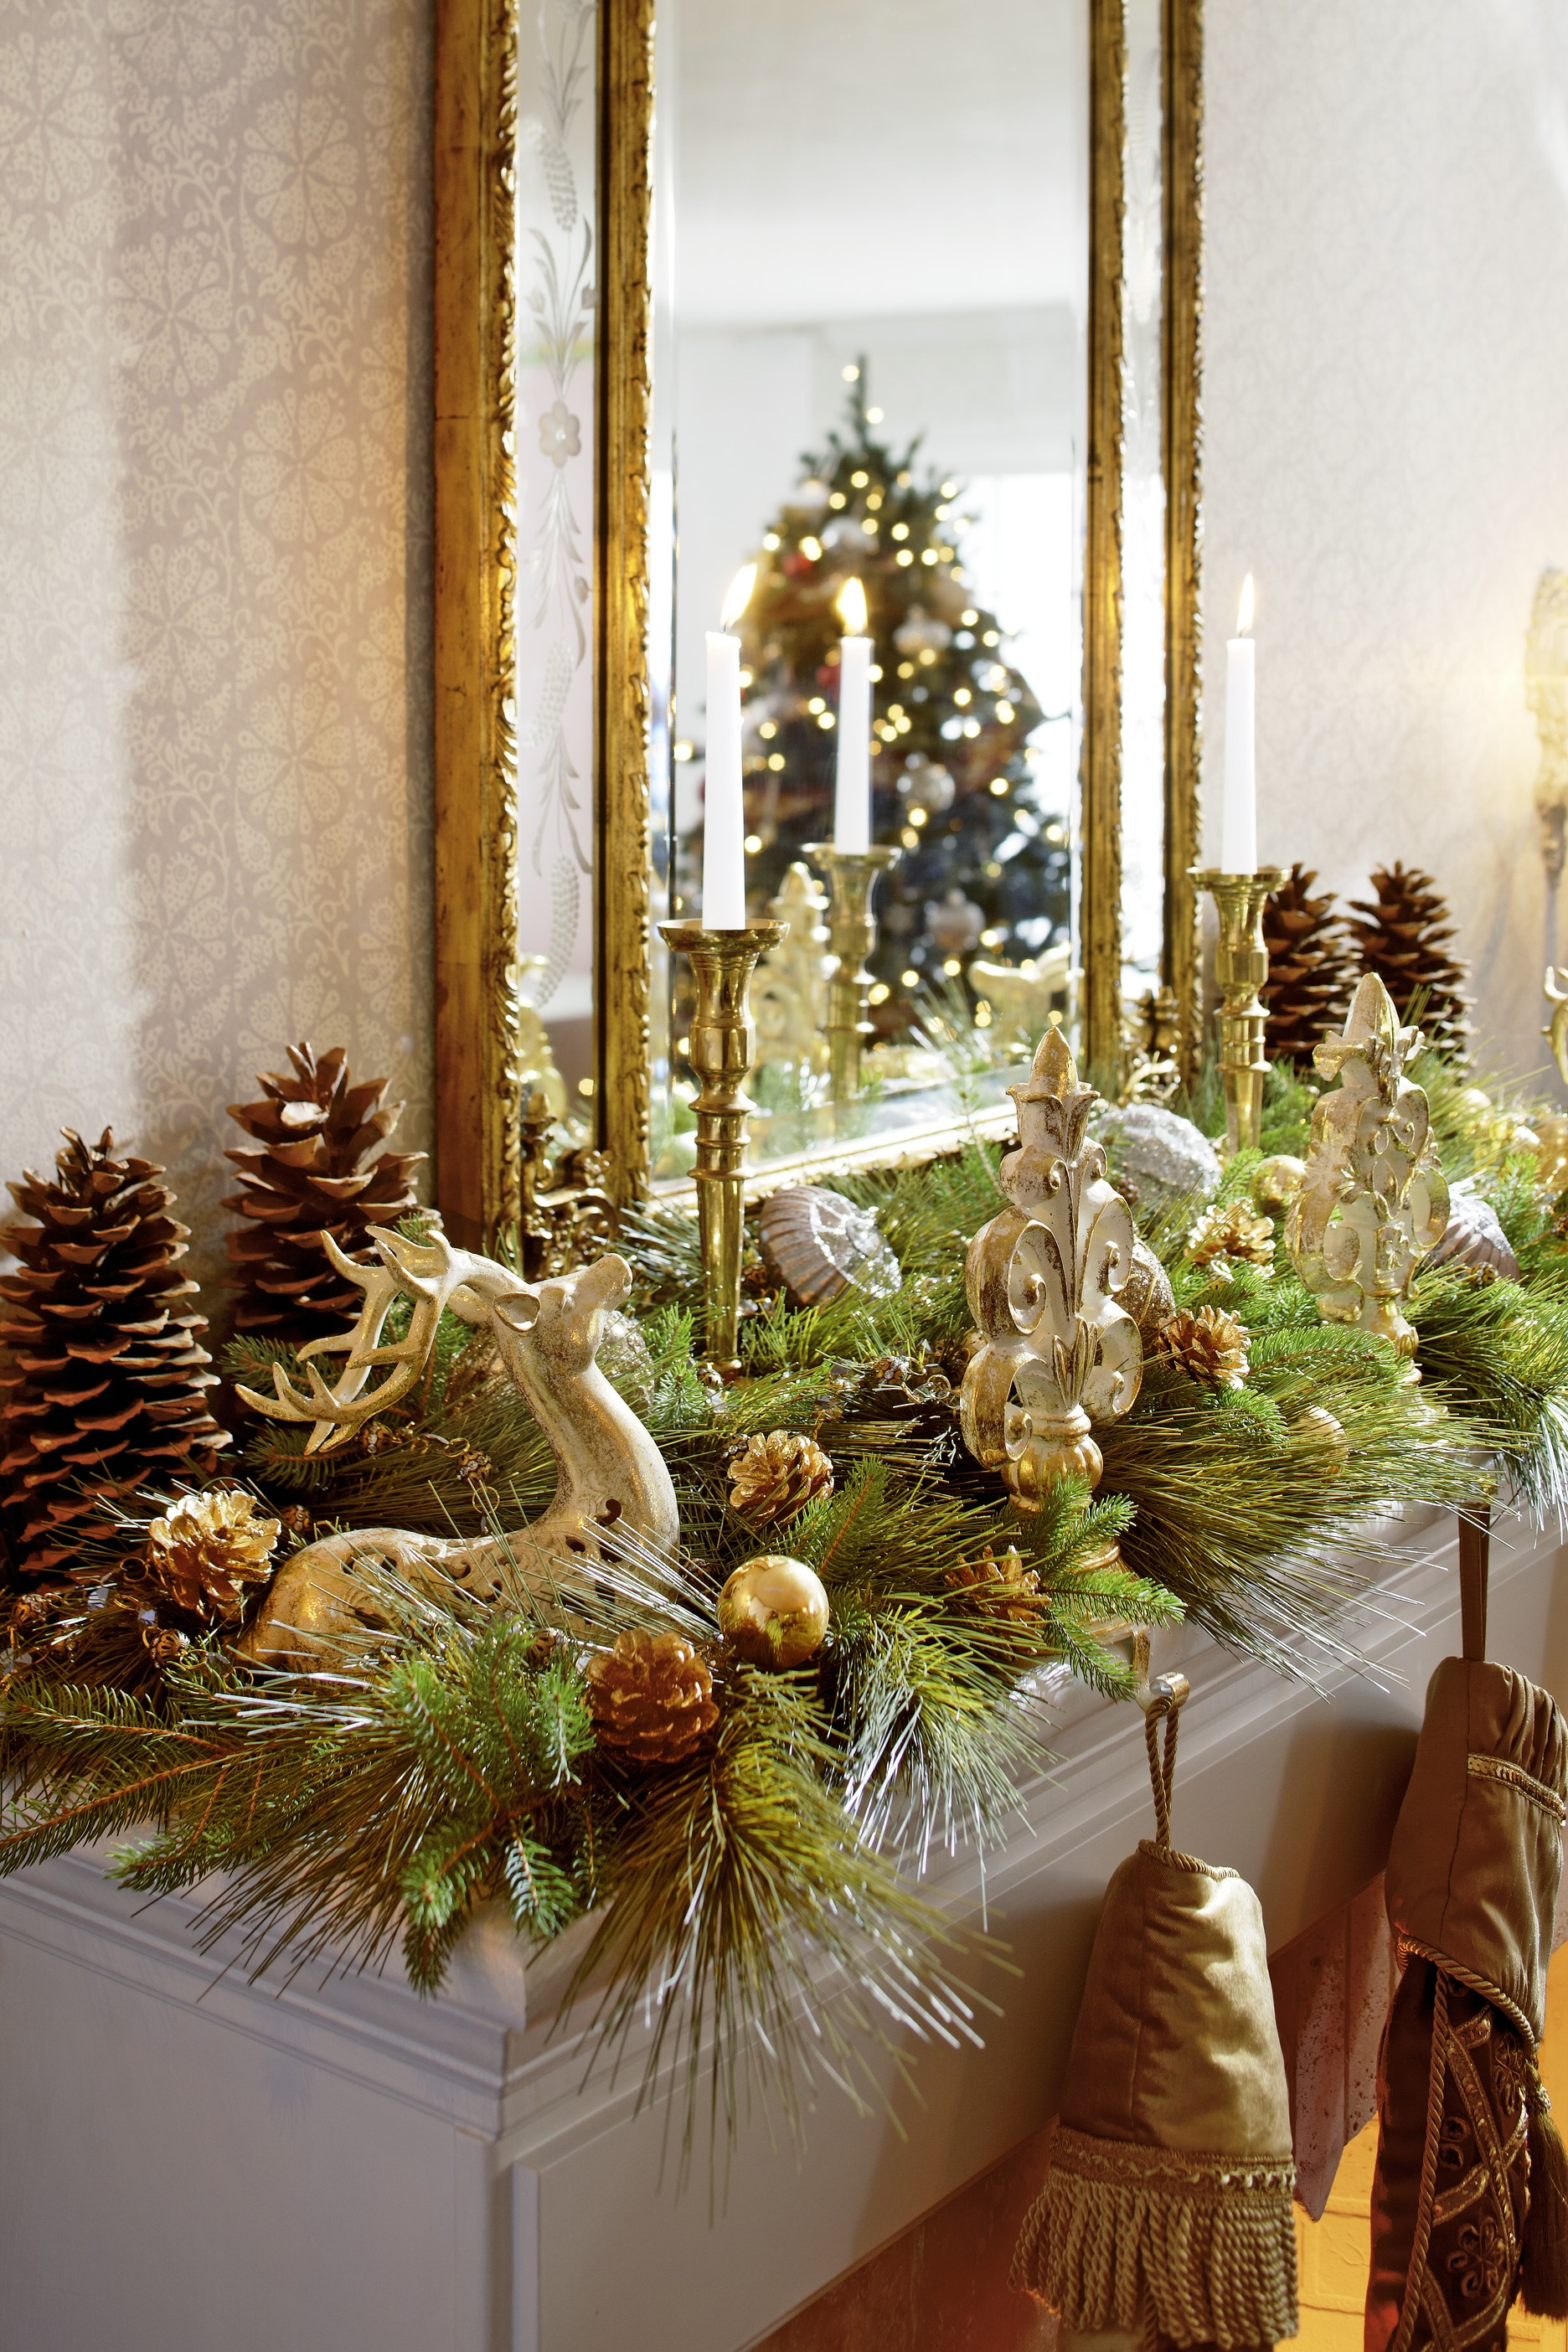 Decorating A Mantel For Christmas decorating: holiday mantels | traditional home